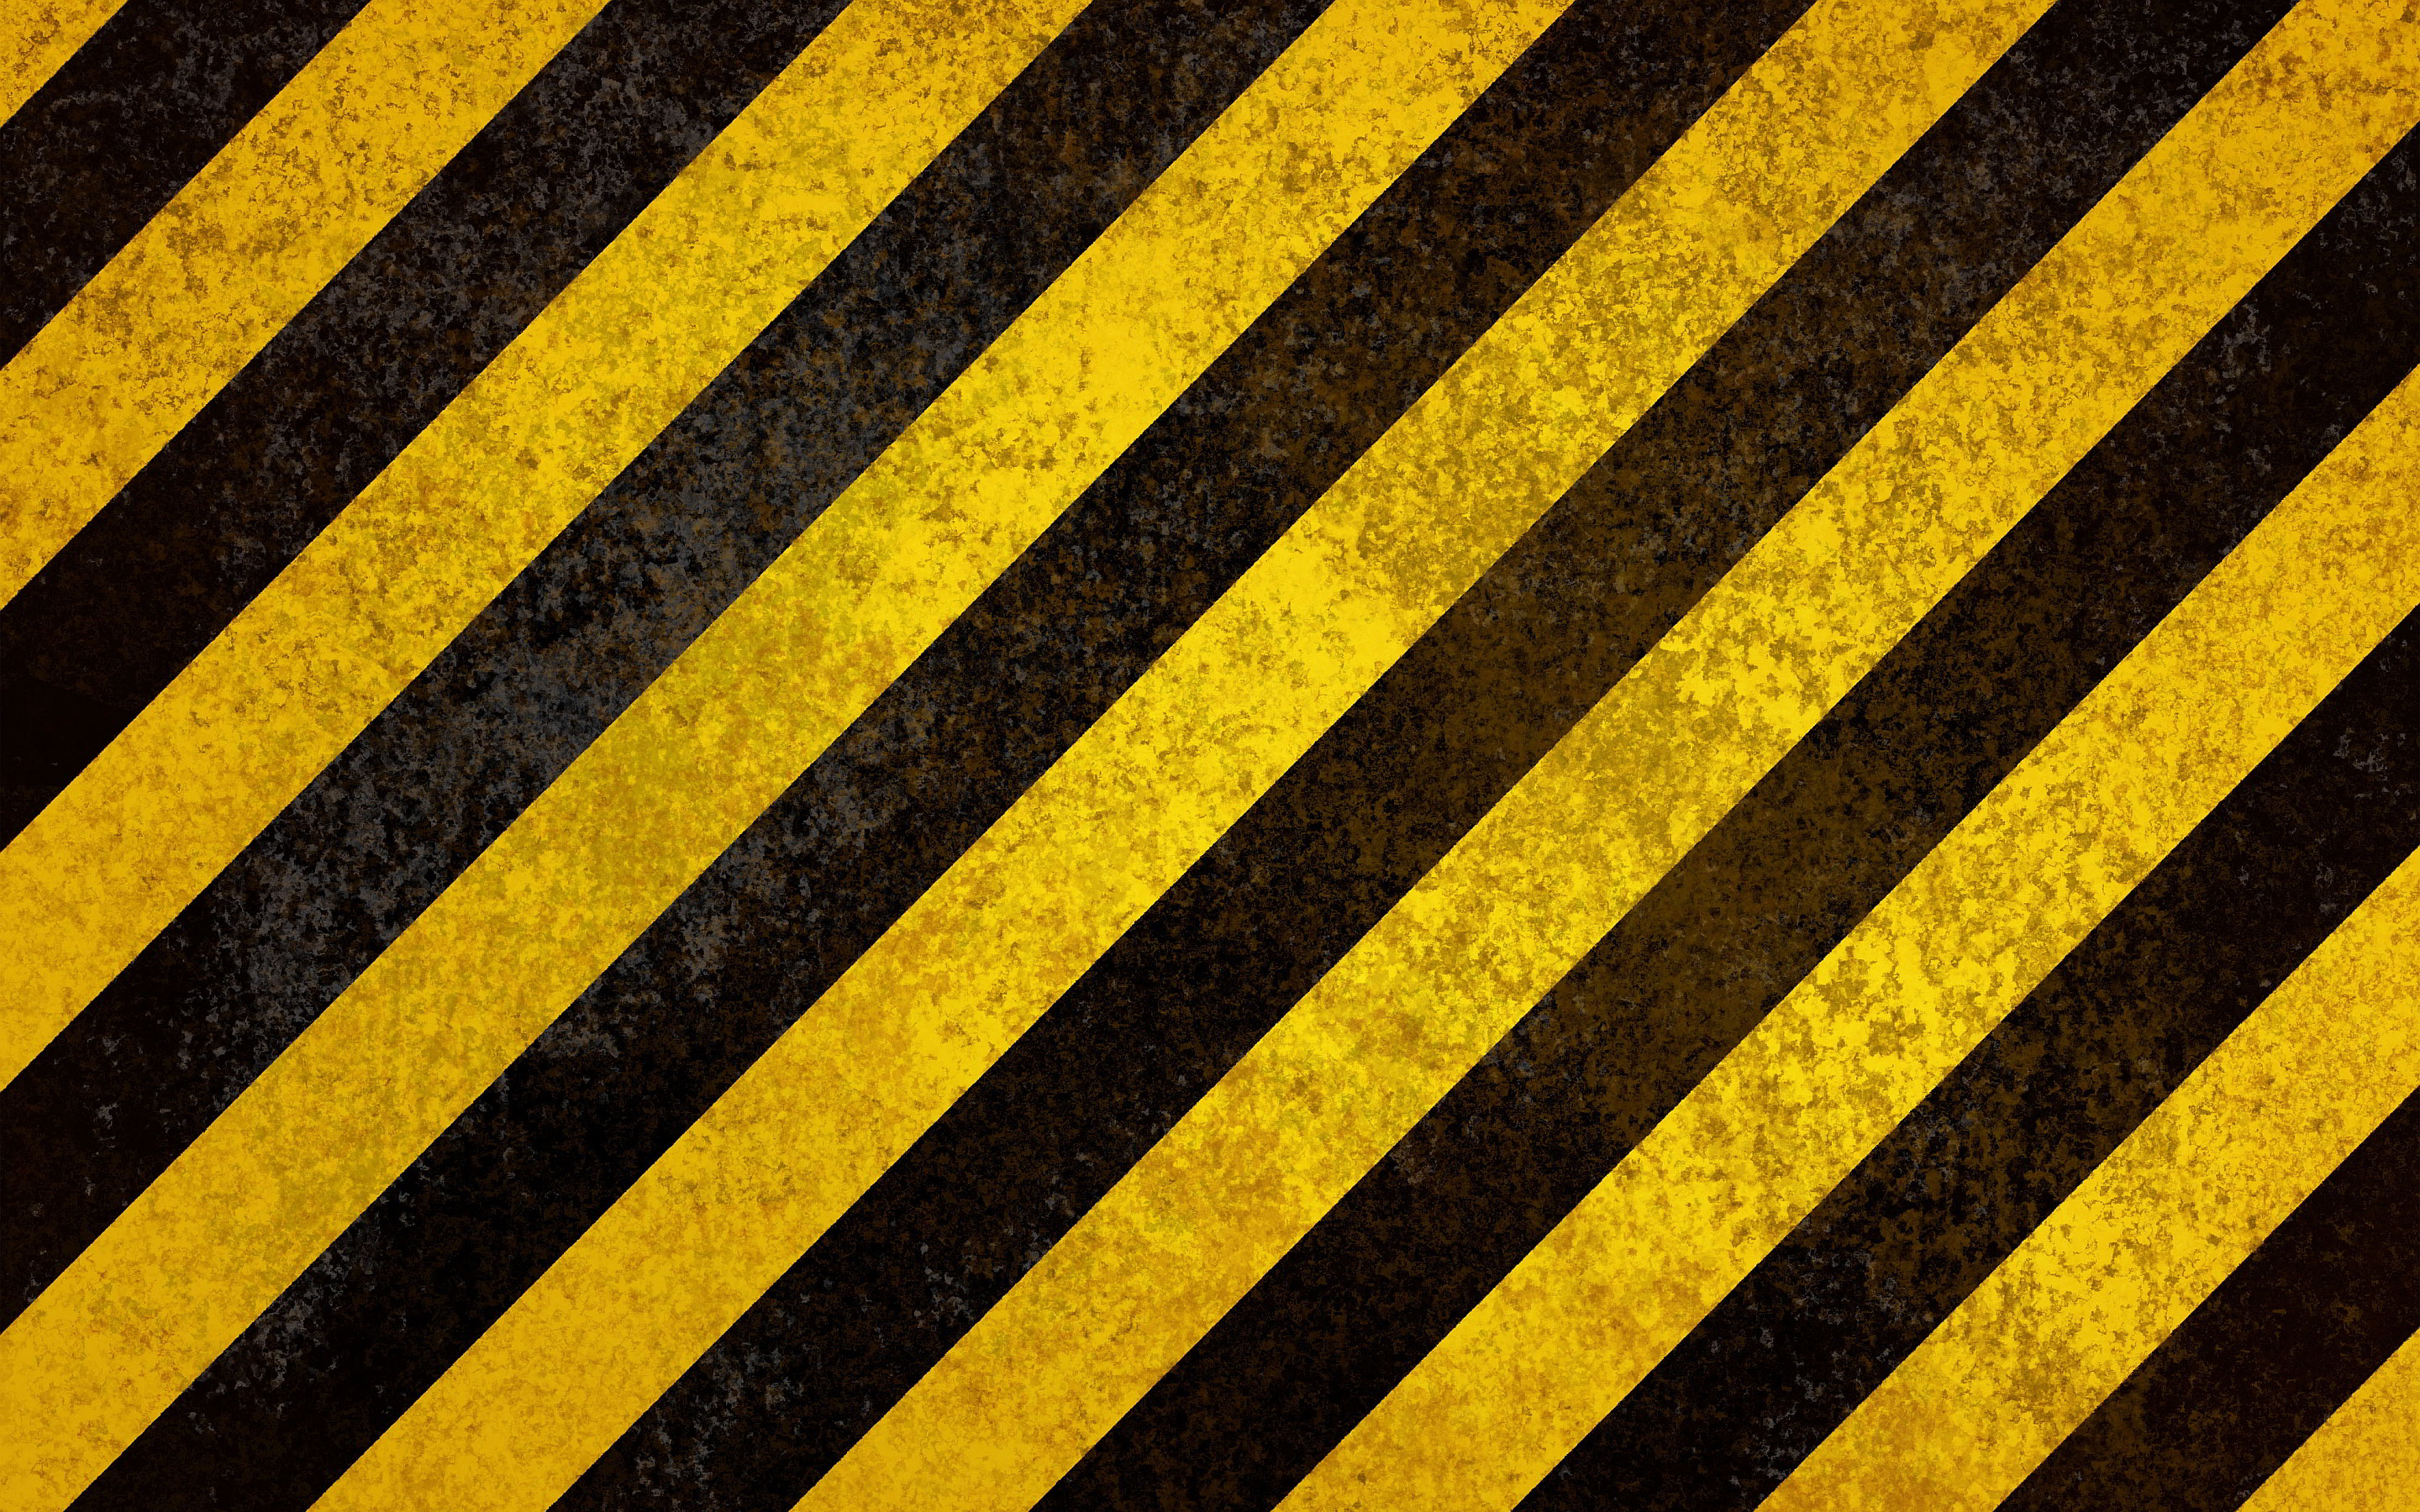 2880x1800 - Yellow and Black 3